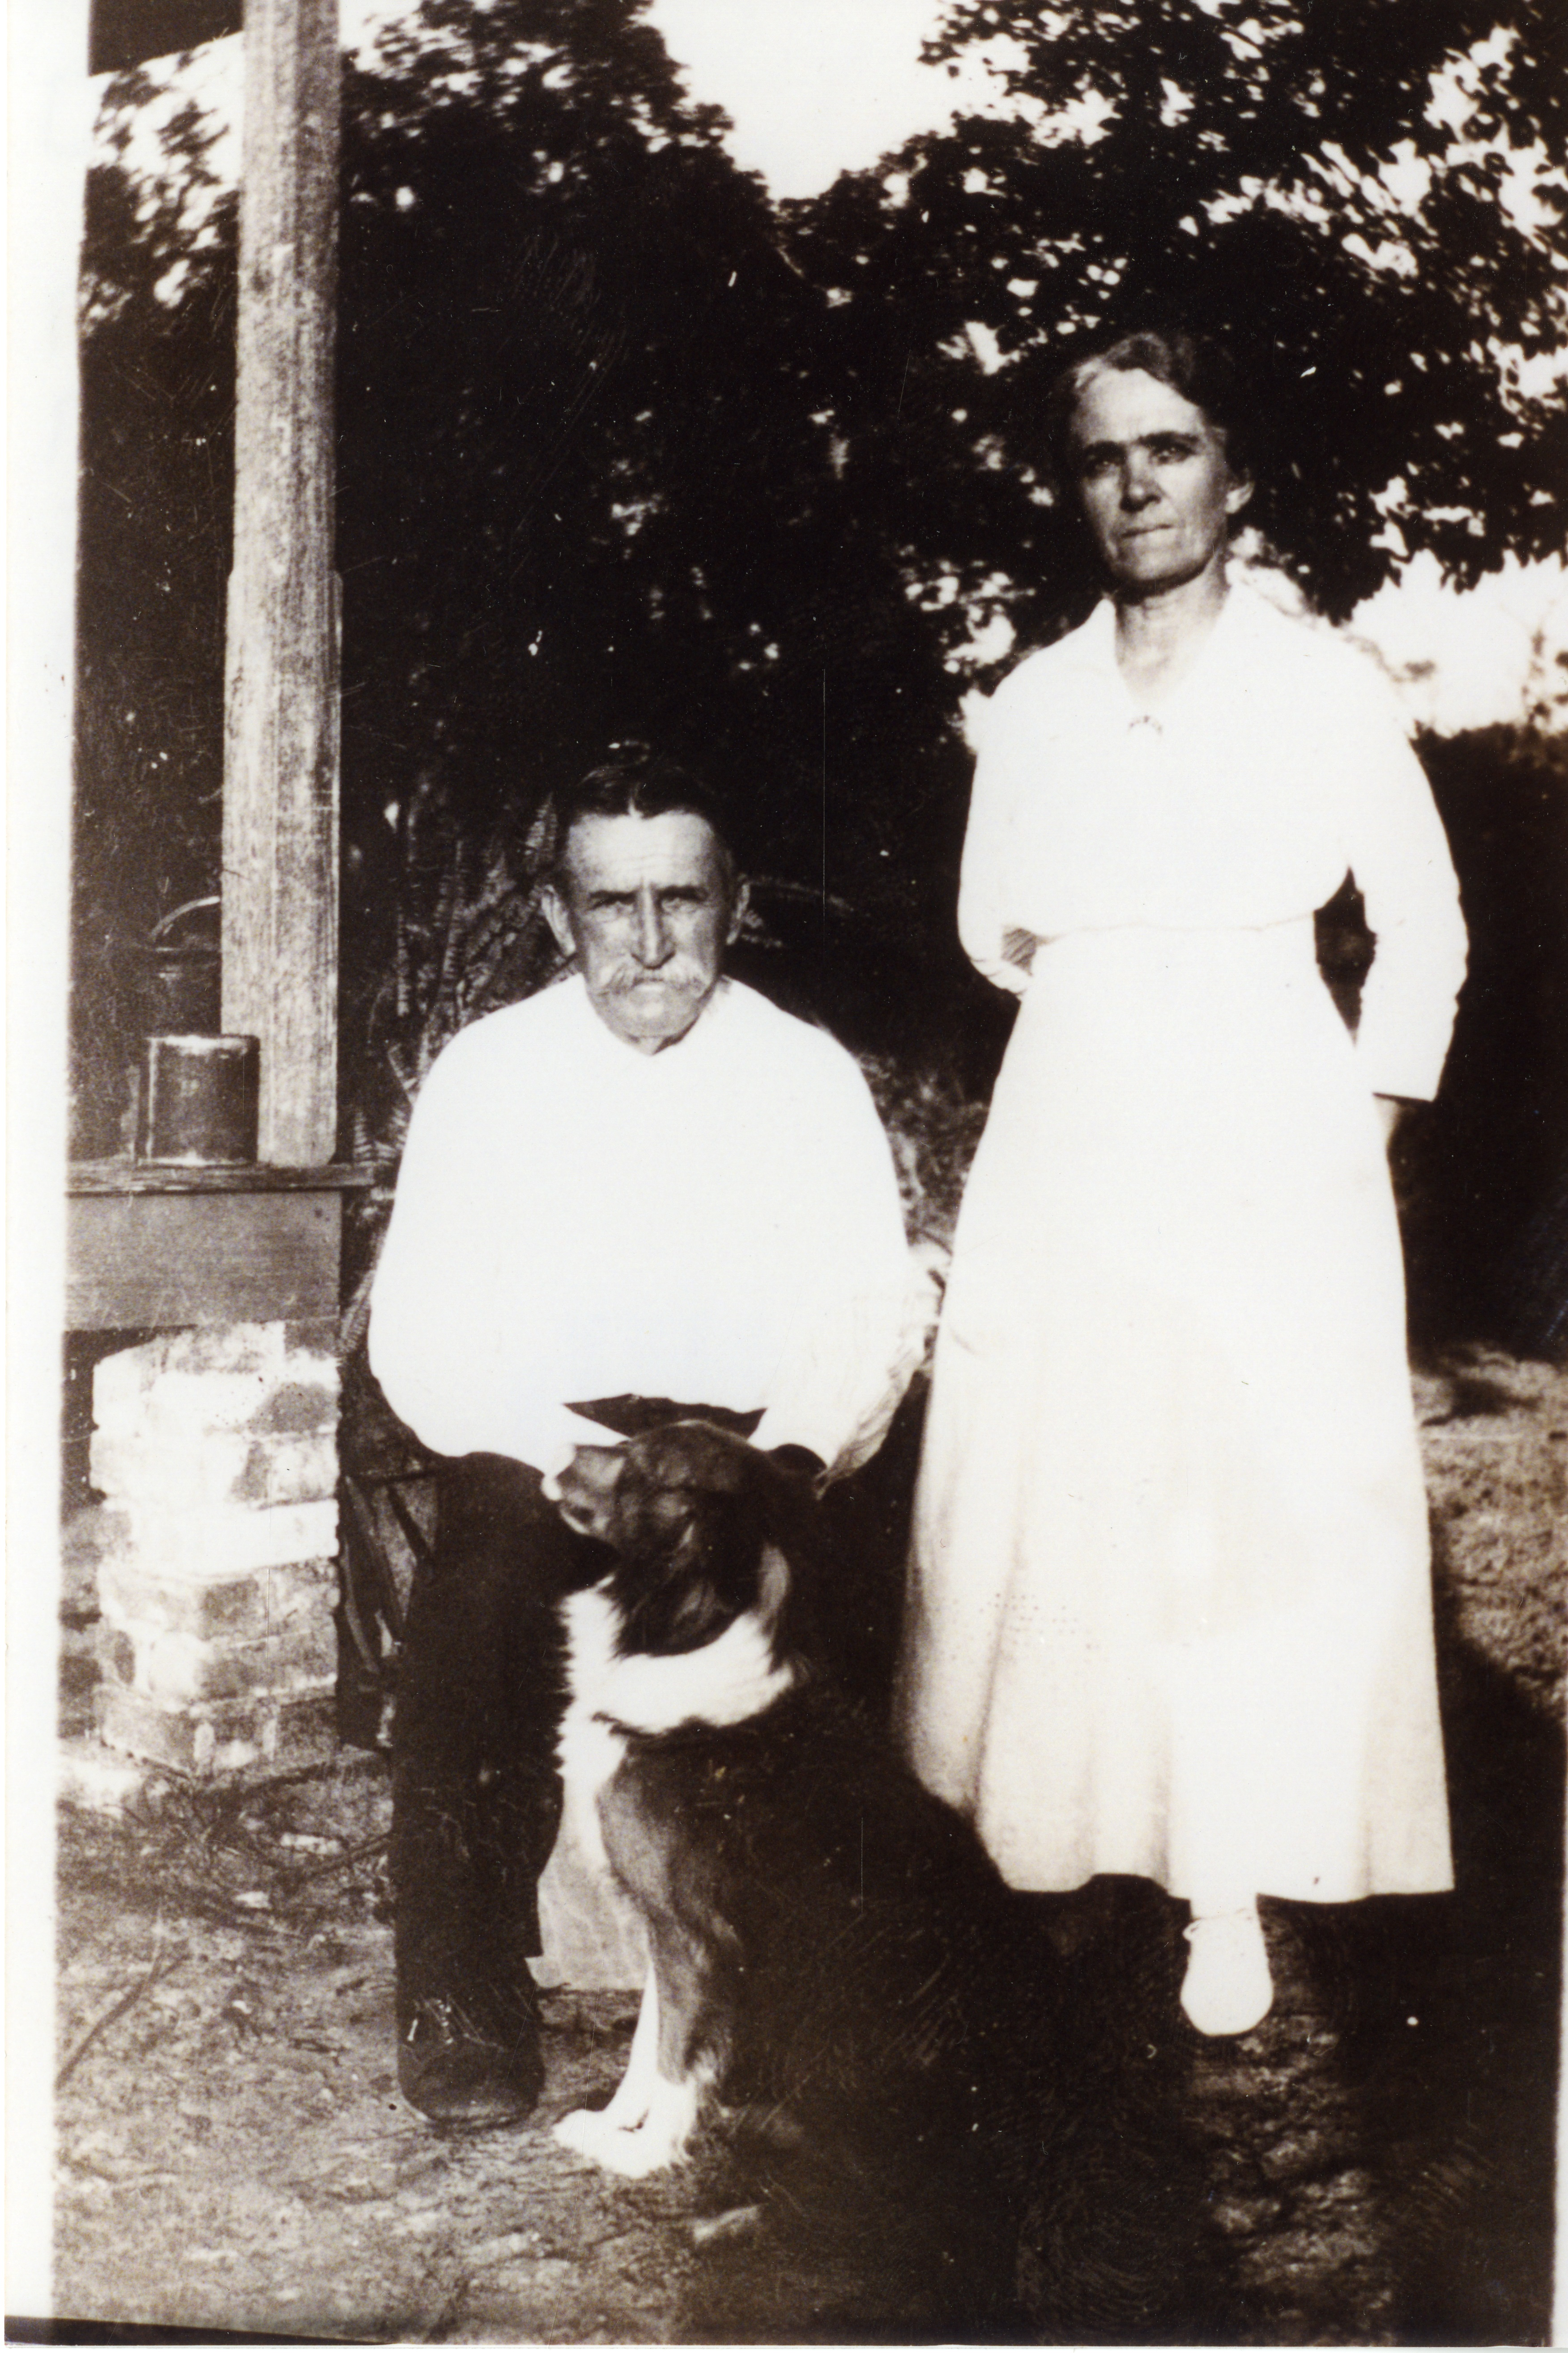 Wesley and Mary Louise Pinder Lowe, Anona, Florida, circa 1930.